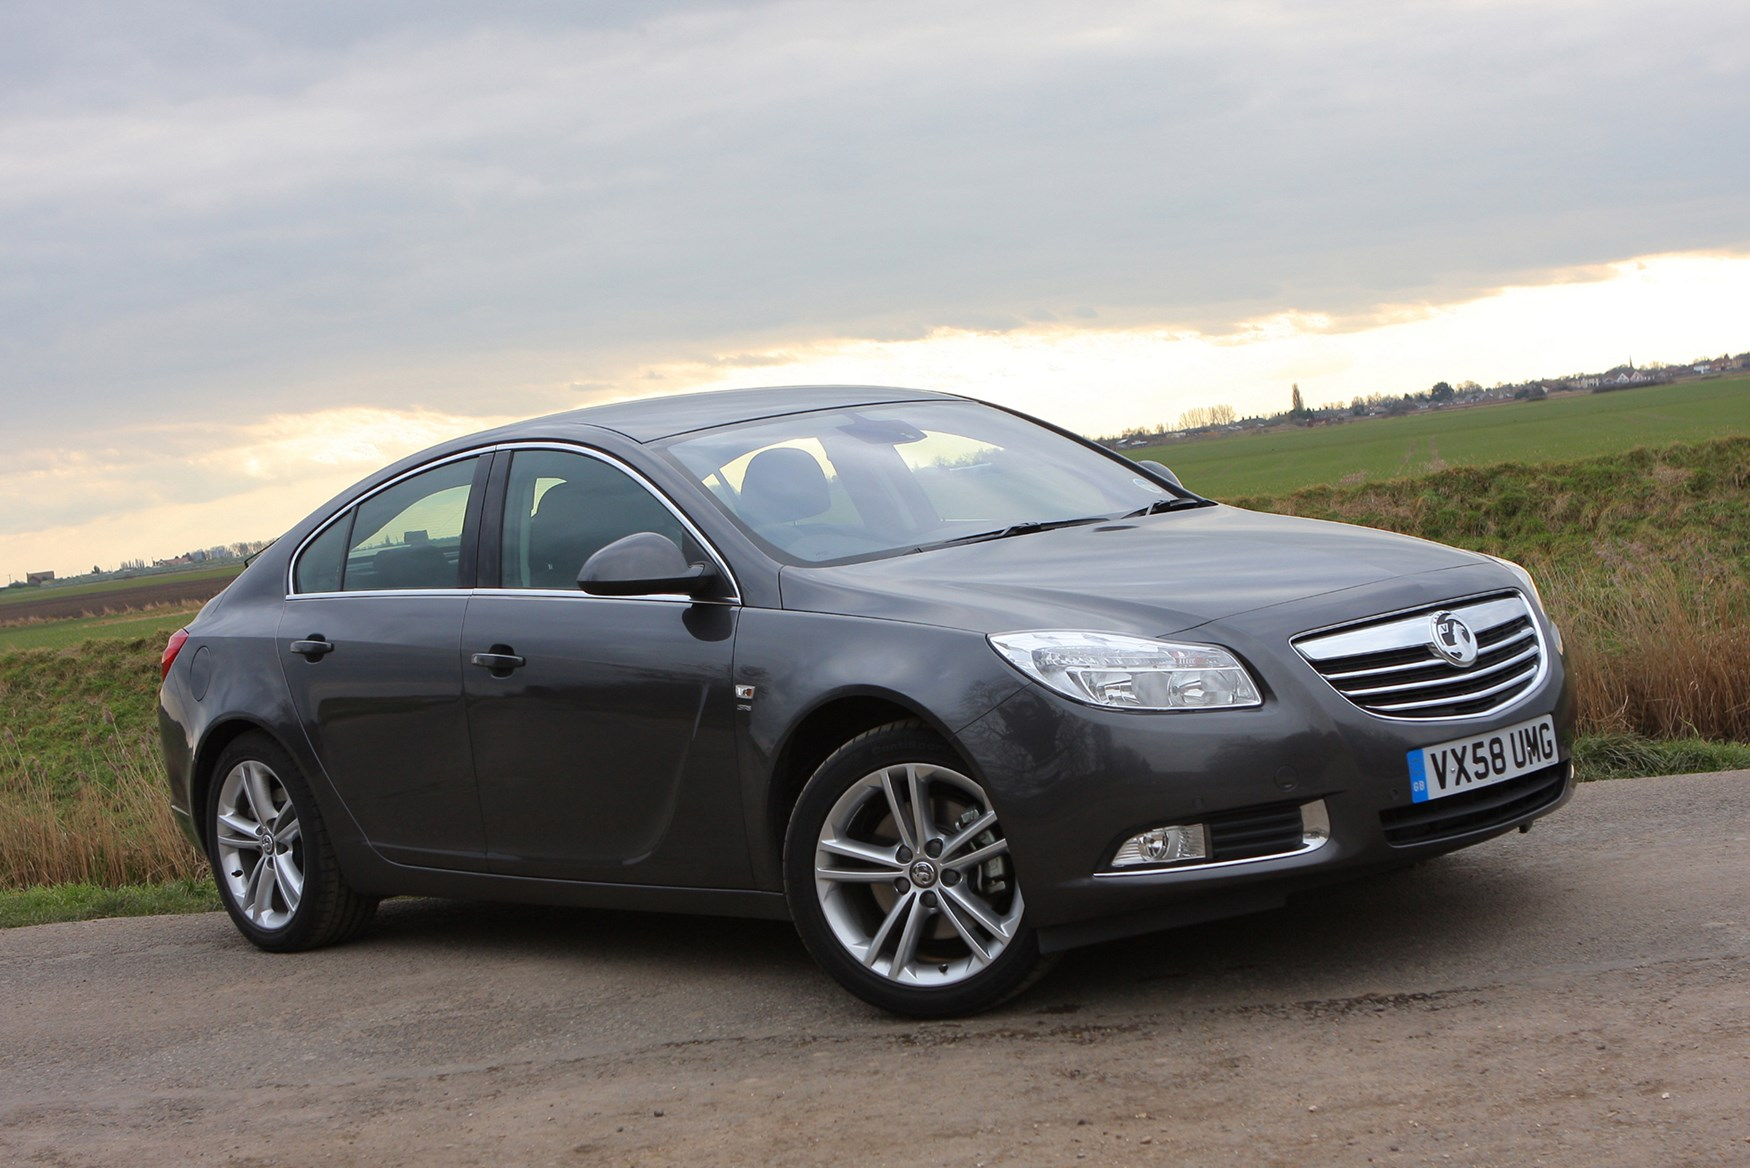 vauxhall insignia hatchback 2009 photos parkers. Black Bedroom Furniture Sets. Home Design Ideas